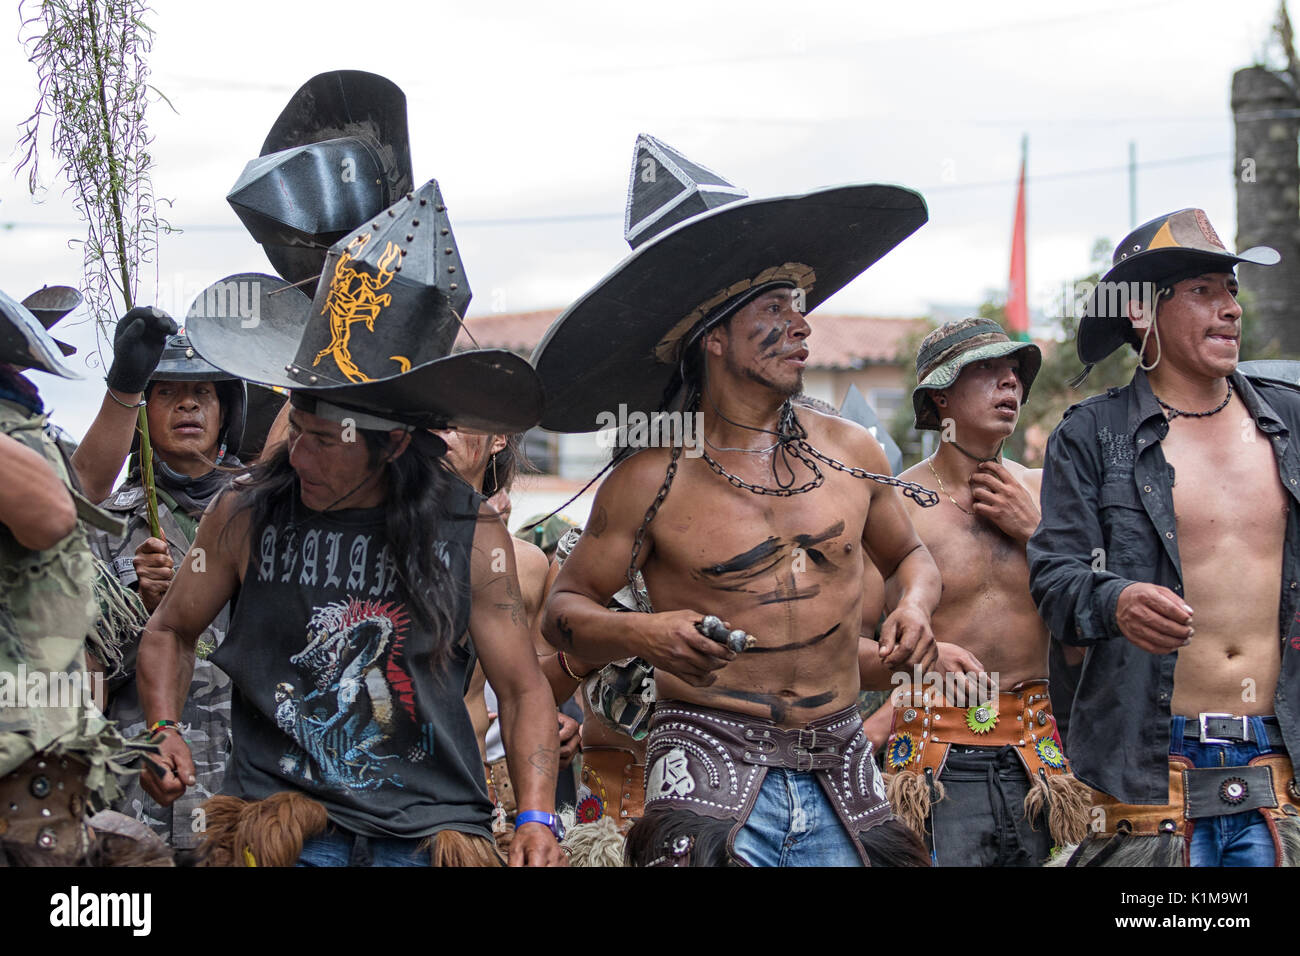 June 29, 2017 Cotacachi, Ecuador: kichwa indigenous people marching on the street during Inti Raymi festival - Stock Image